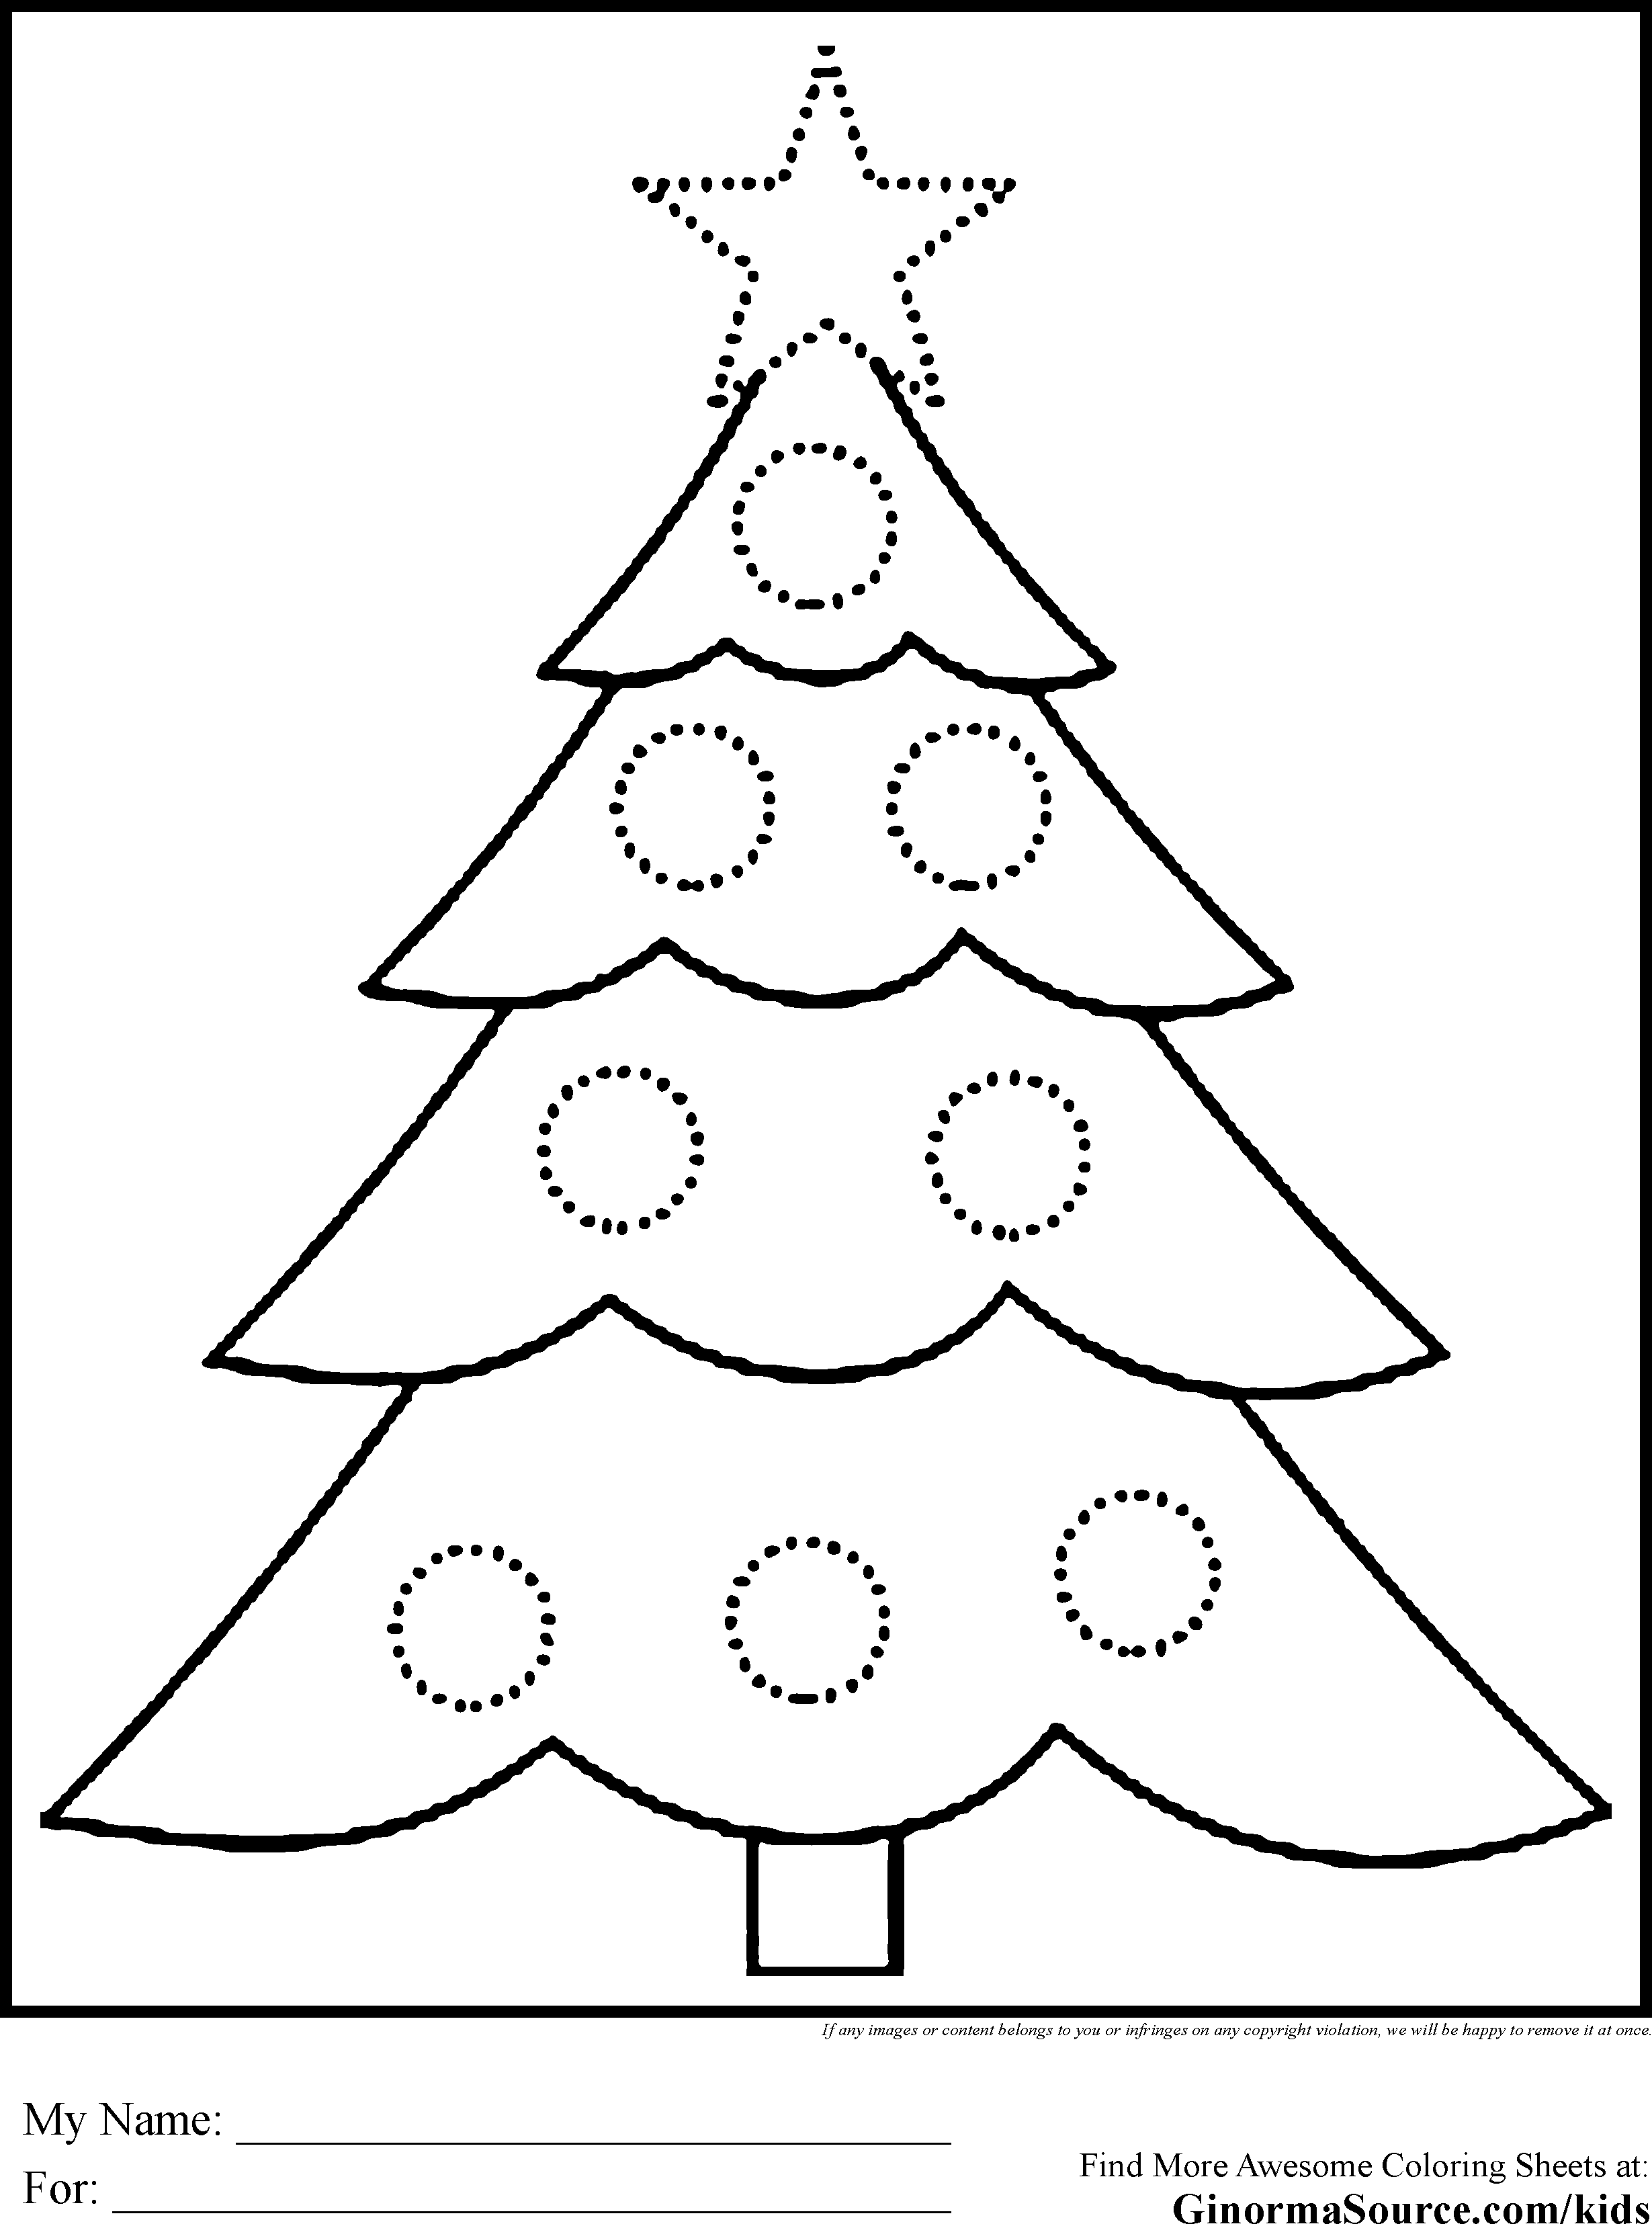 Big Christmas Tree Coloring Pages - Coloring Home